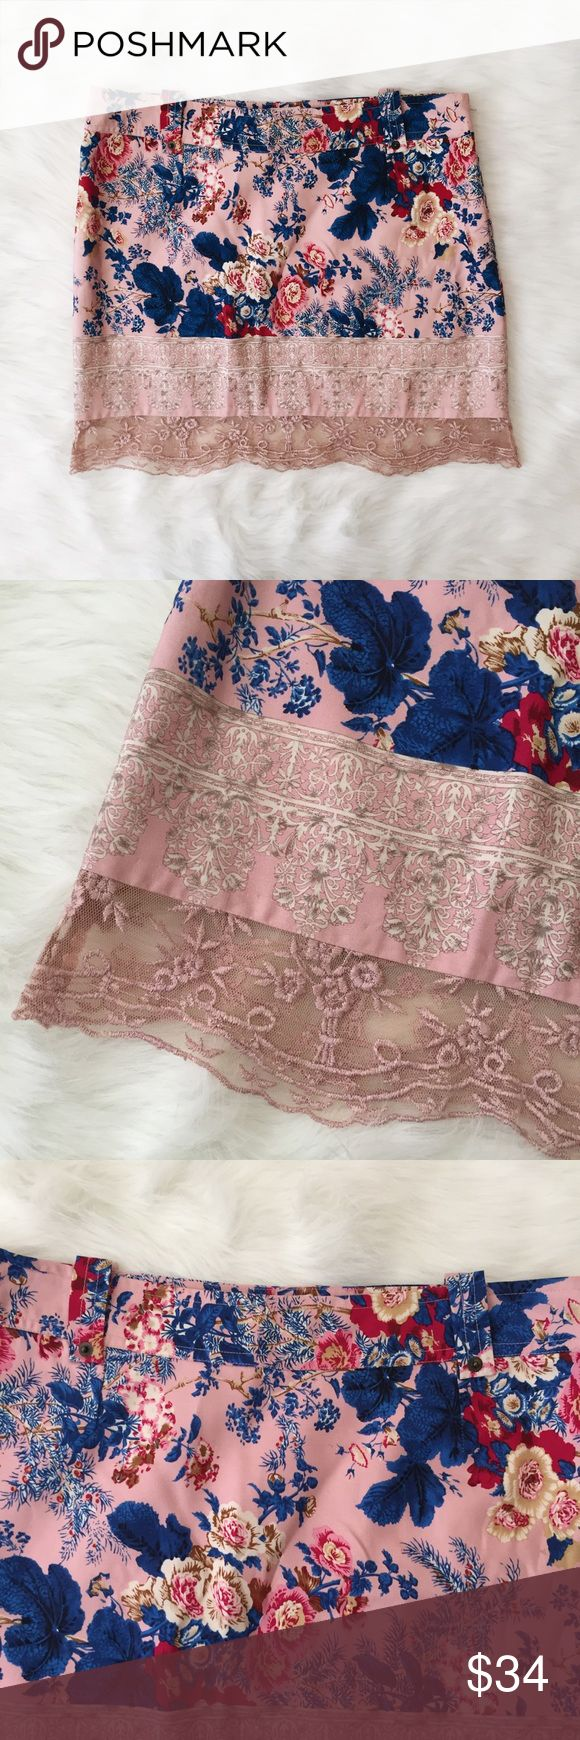 Anthro Plenty Floral Pink Lace Silk Mini Skirt Great condition! This skirt is amazing. I wish it was my size! Anthropologie Skirts Mini